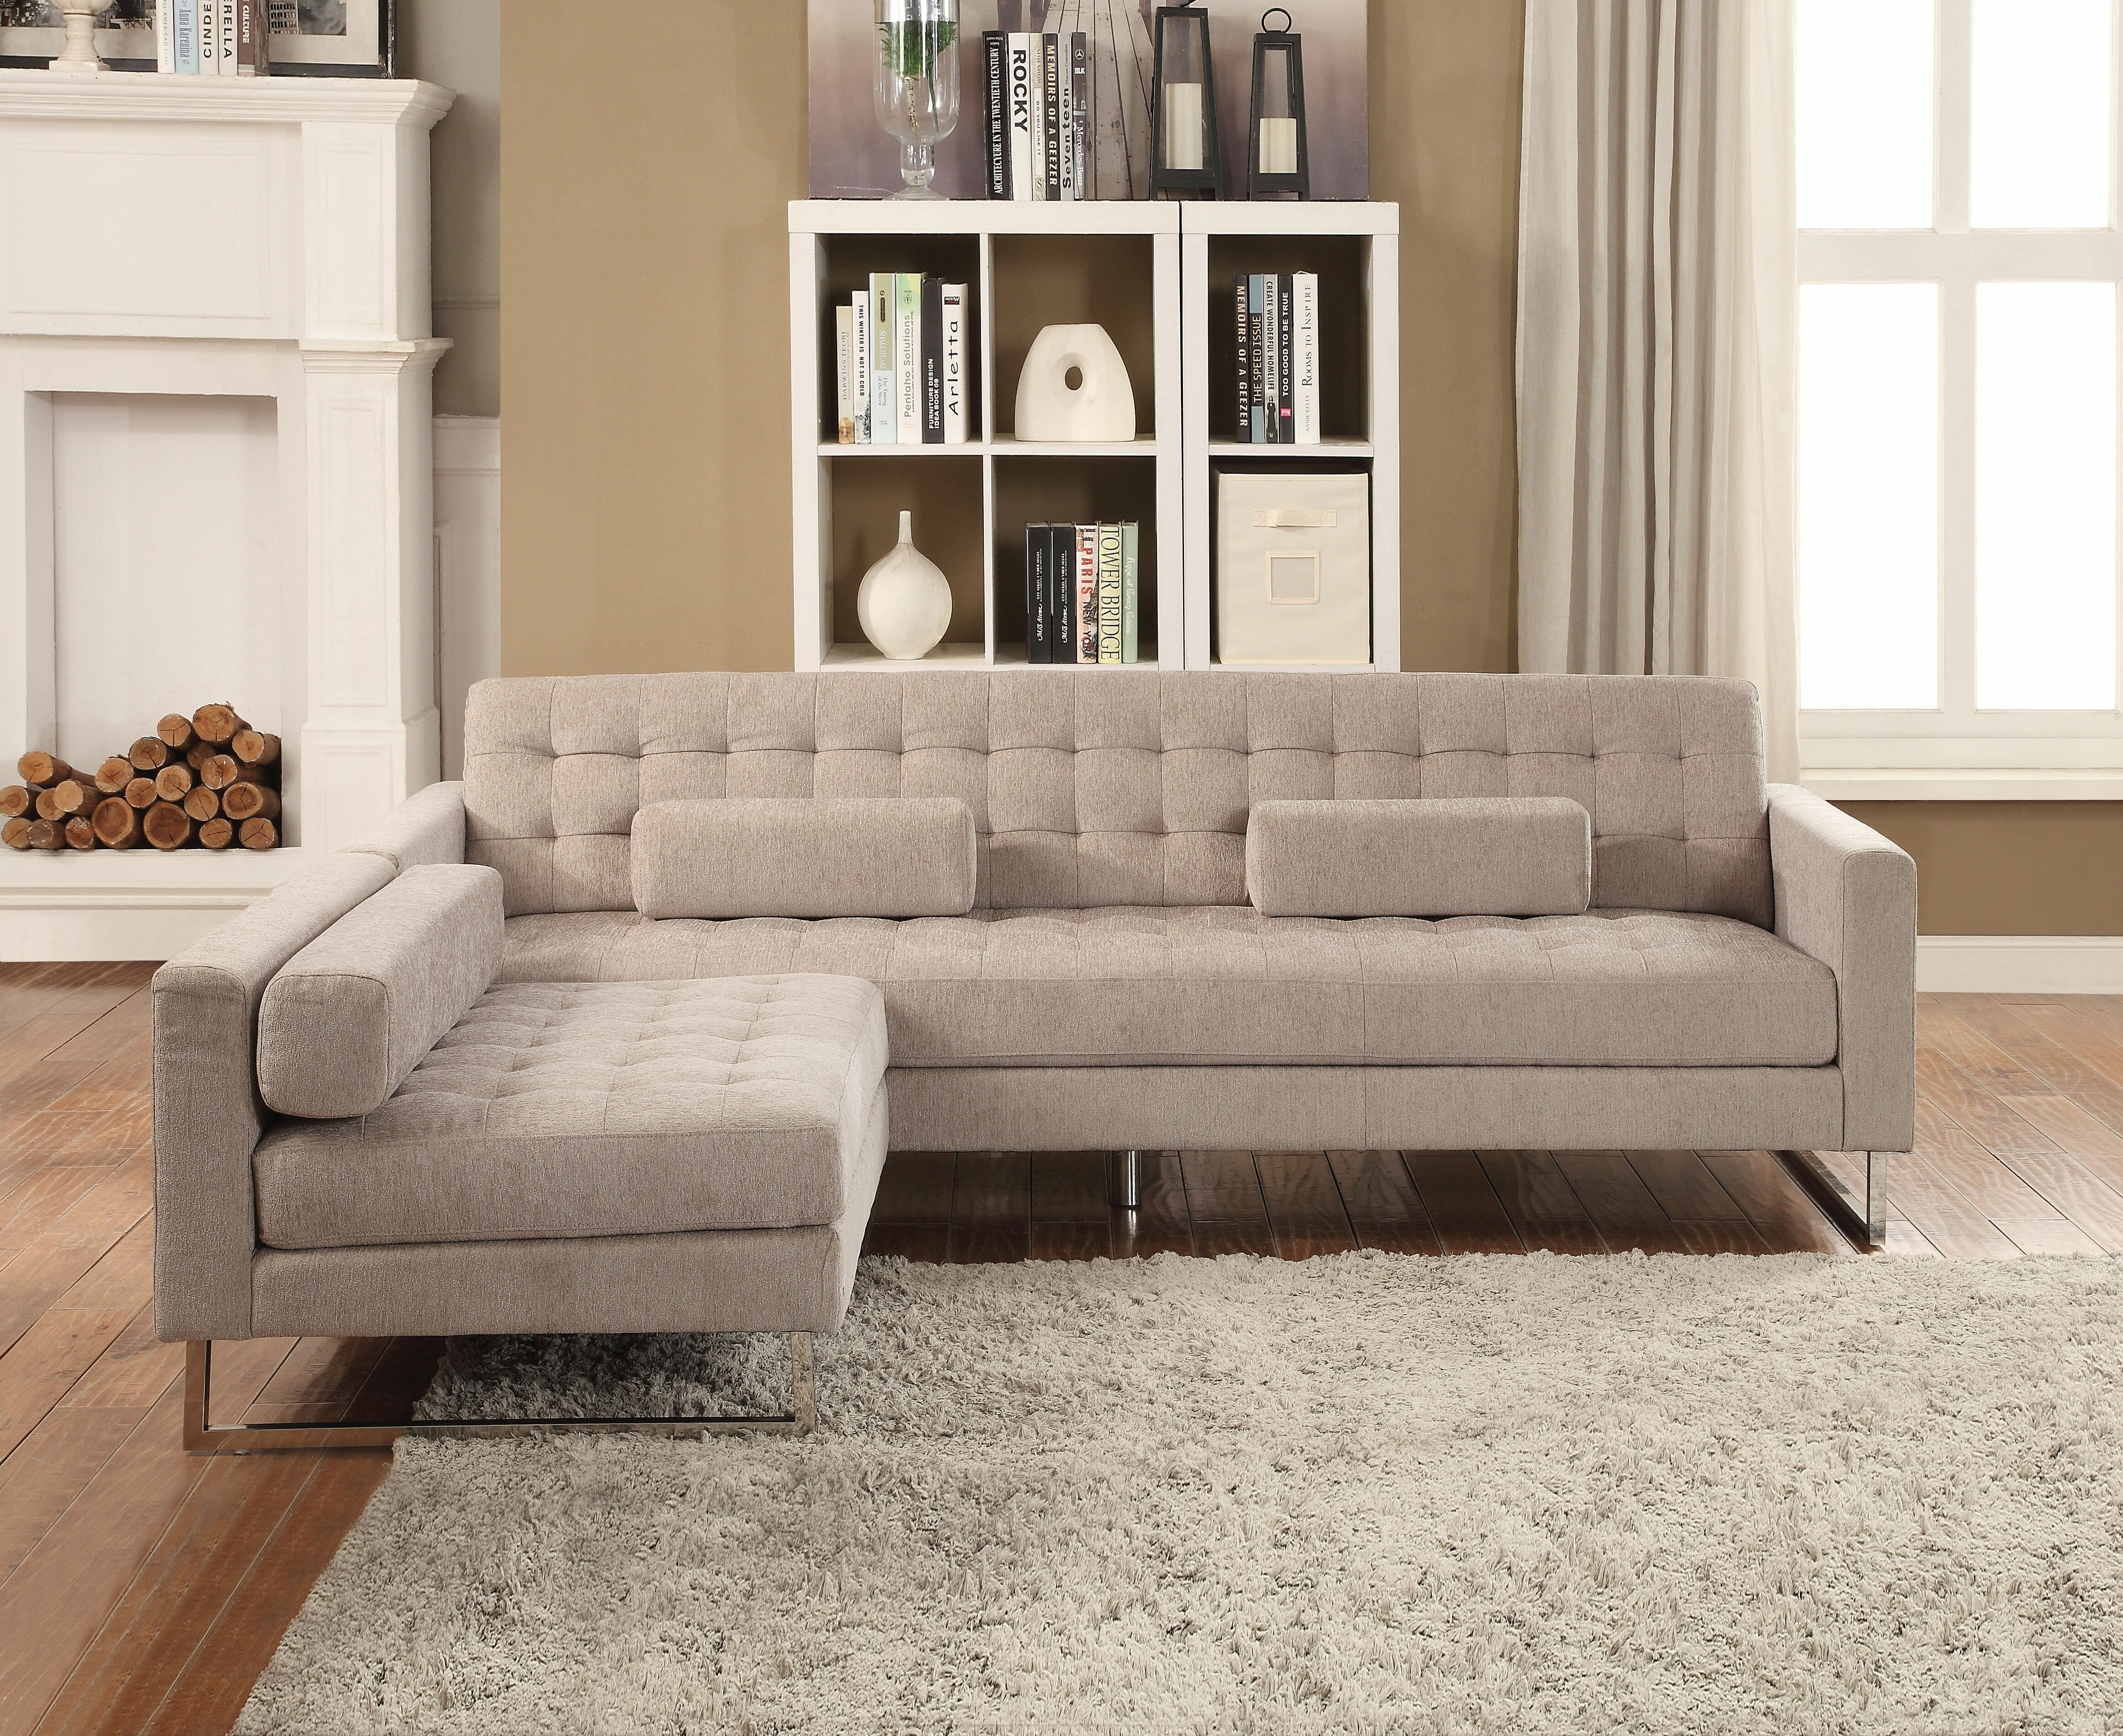 Westwick Onless Tufted Sofa